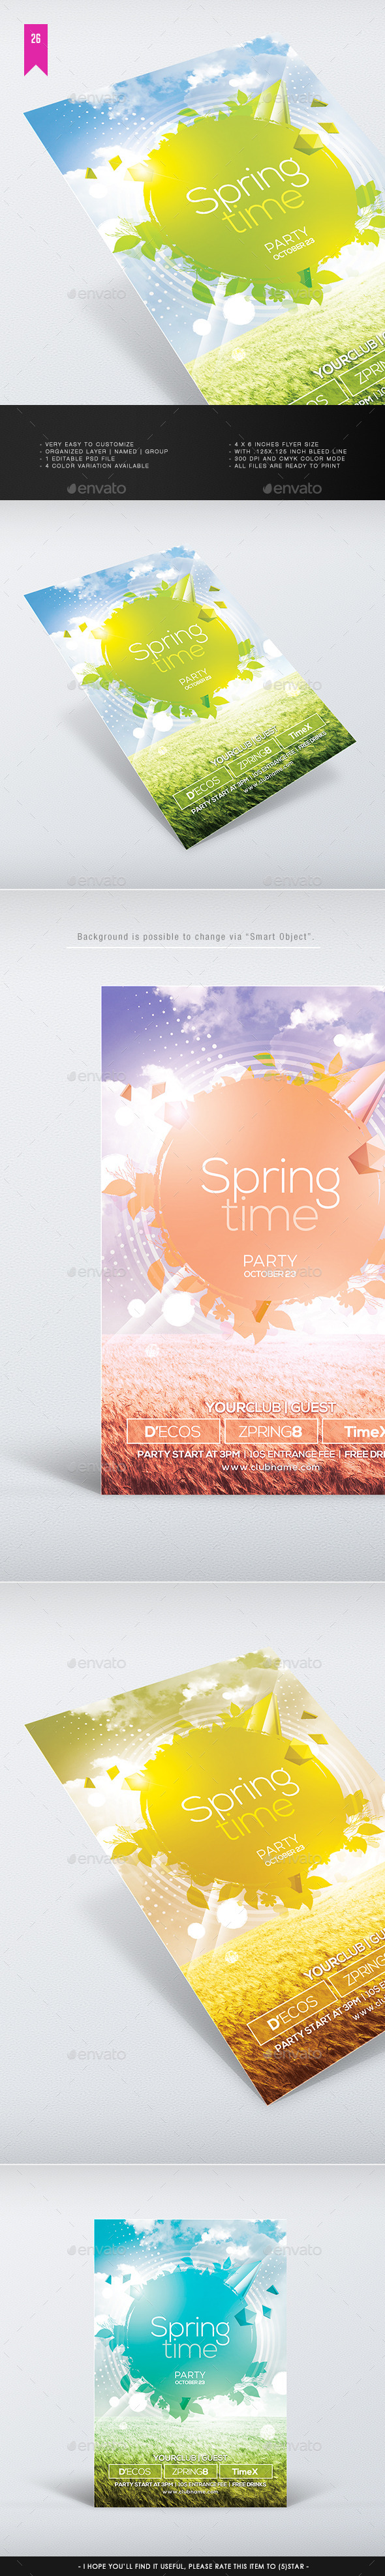 Spring Time V.2 - Flyer Template